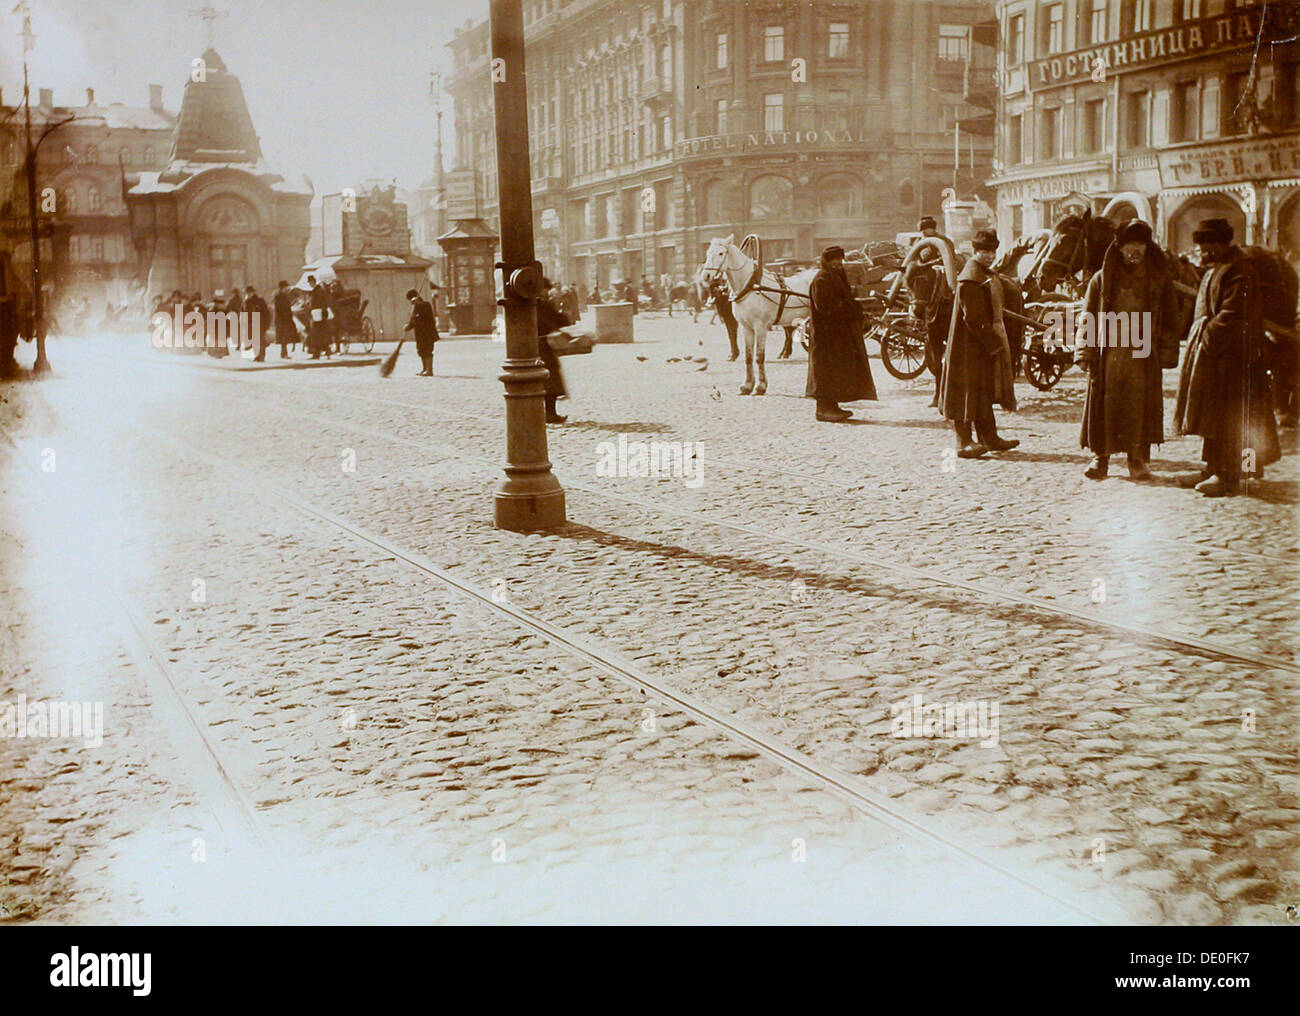 Okhotny Ryad (Hunting Row), Moscow, Russia, 16 March 1911. - Stock Image